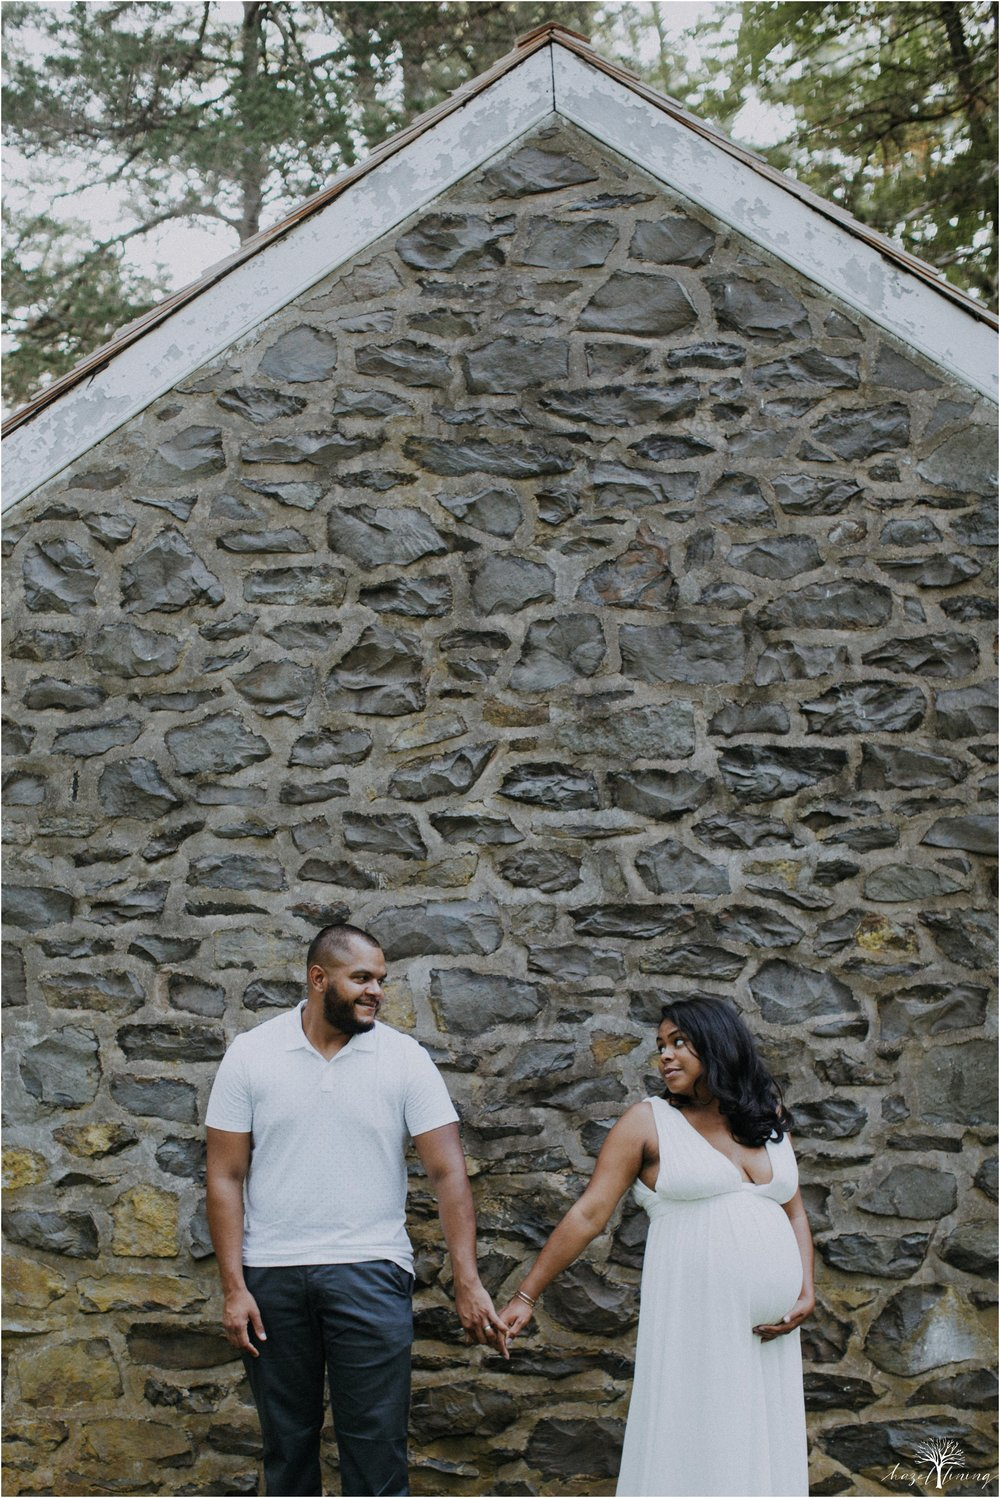 leyka-kristofer-chaparro-ralph-stover-state-park-summer-golden-hour-stream-maternity-session-hazel-lining-travel-wedding-elopement-photography_0041.jpg